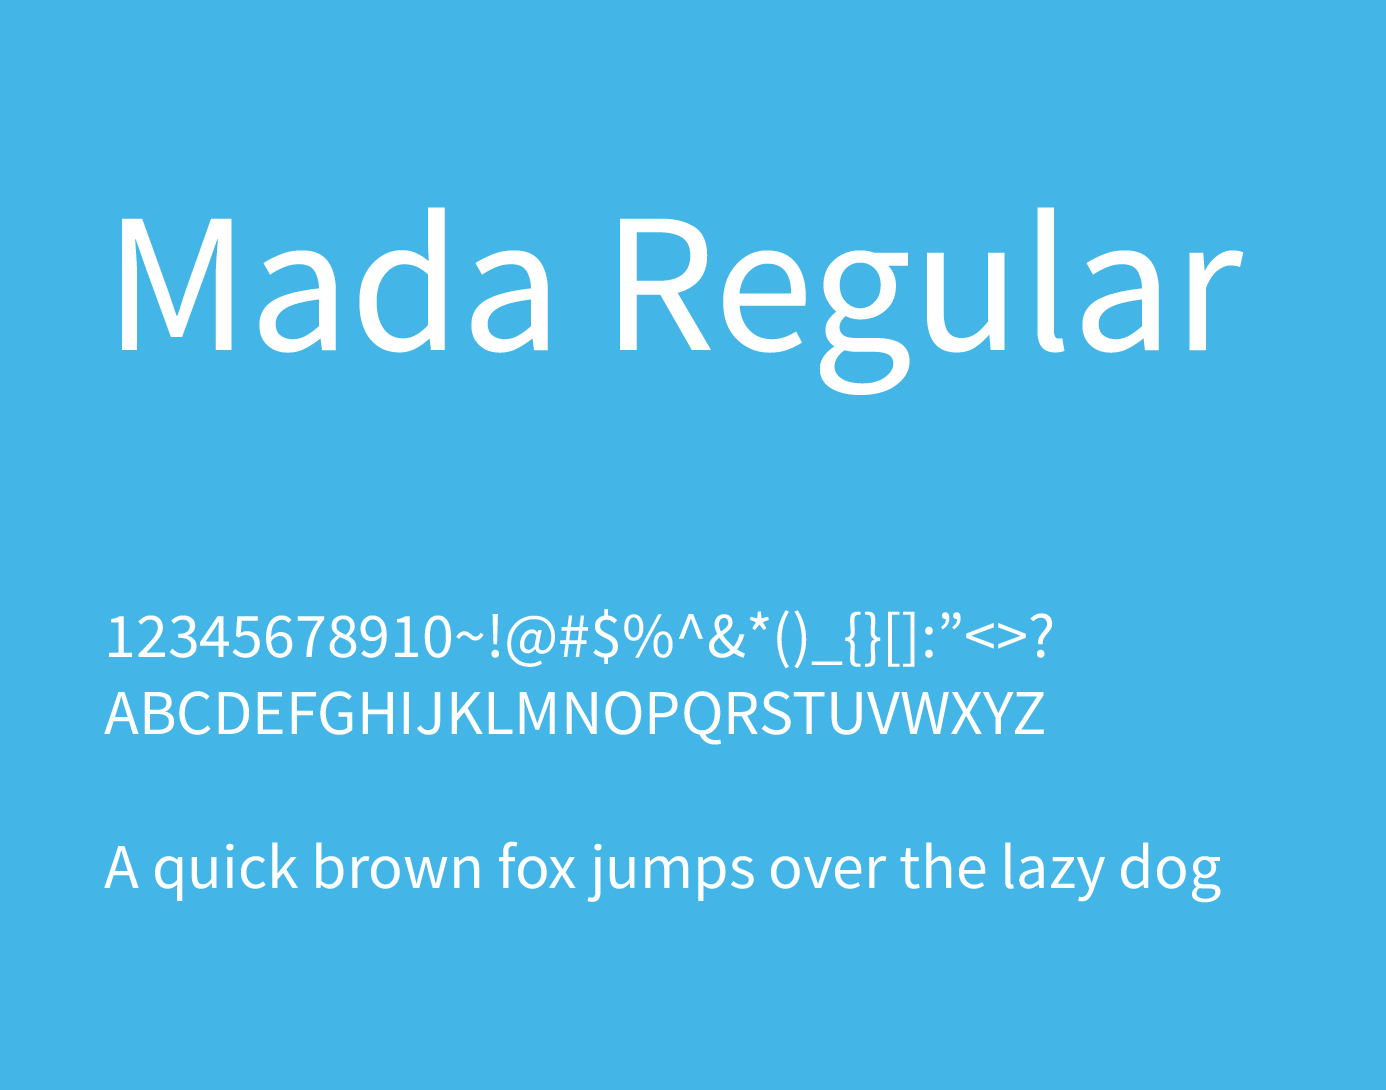 mada regular